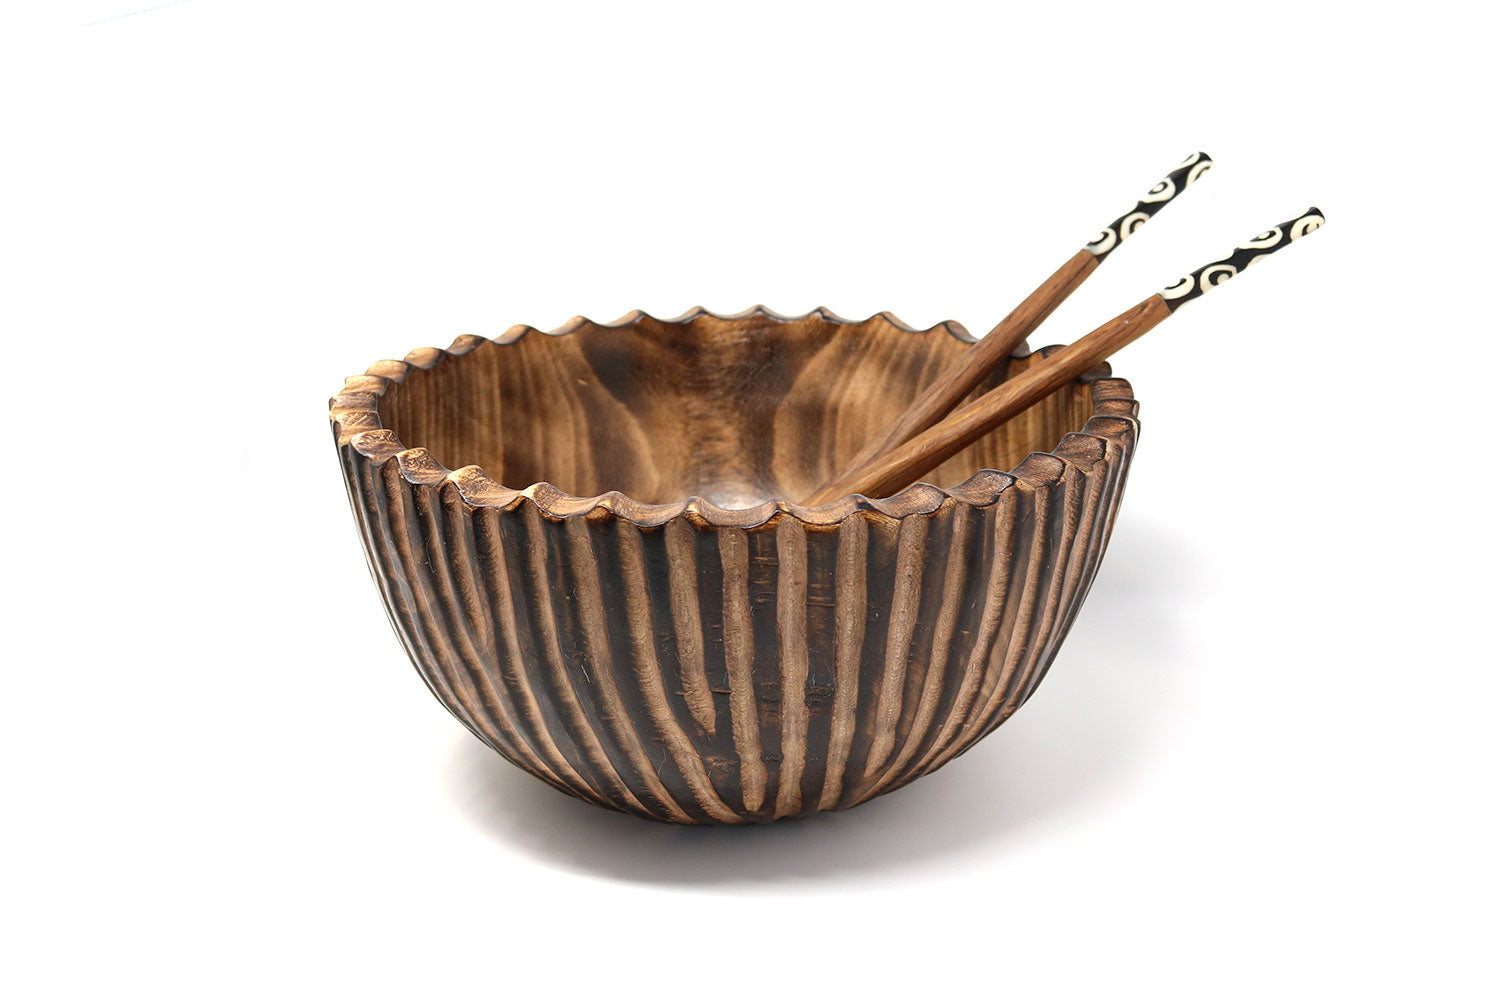 Jacaranda Striped Bowls, various sizes